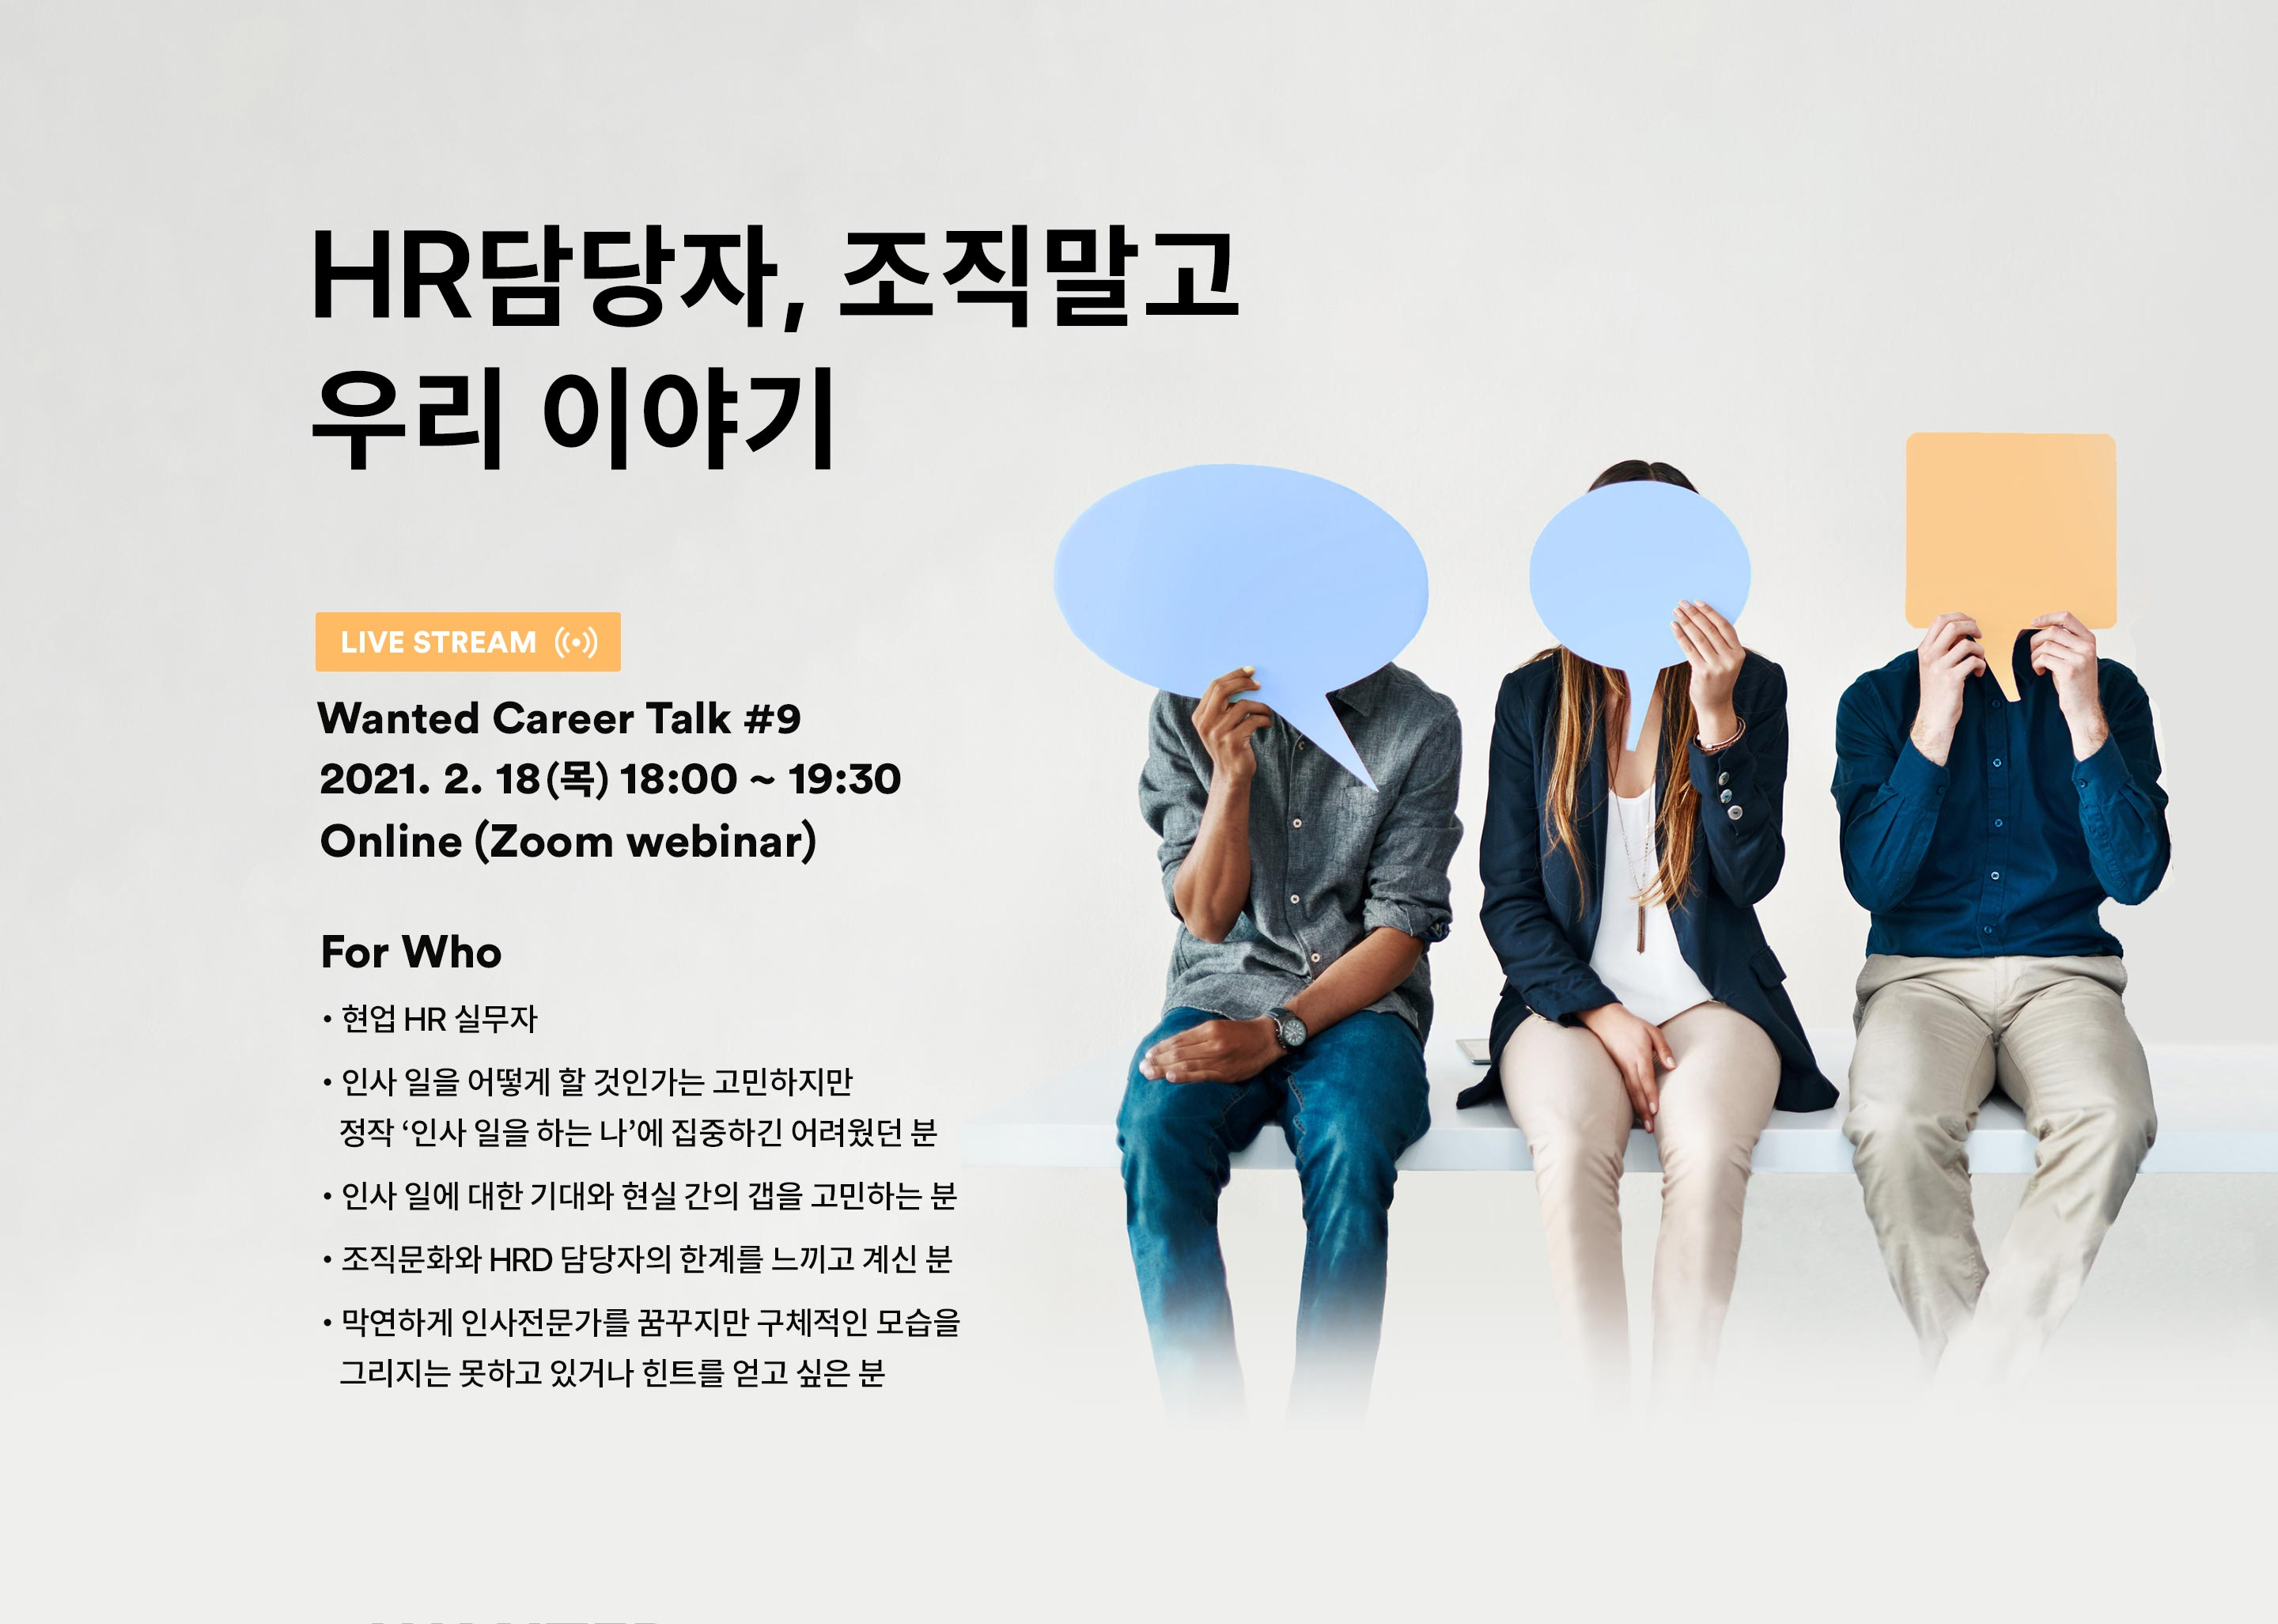 https://static.wanted.co.kr/images/events/1126/67444025.jpg